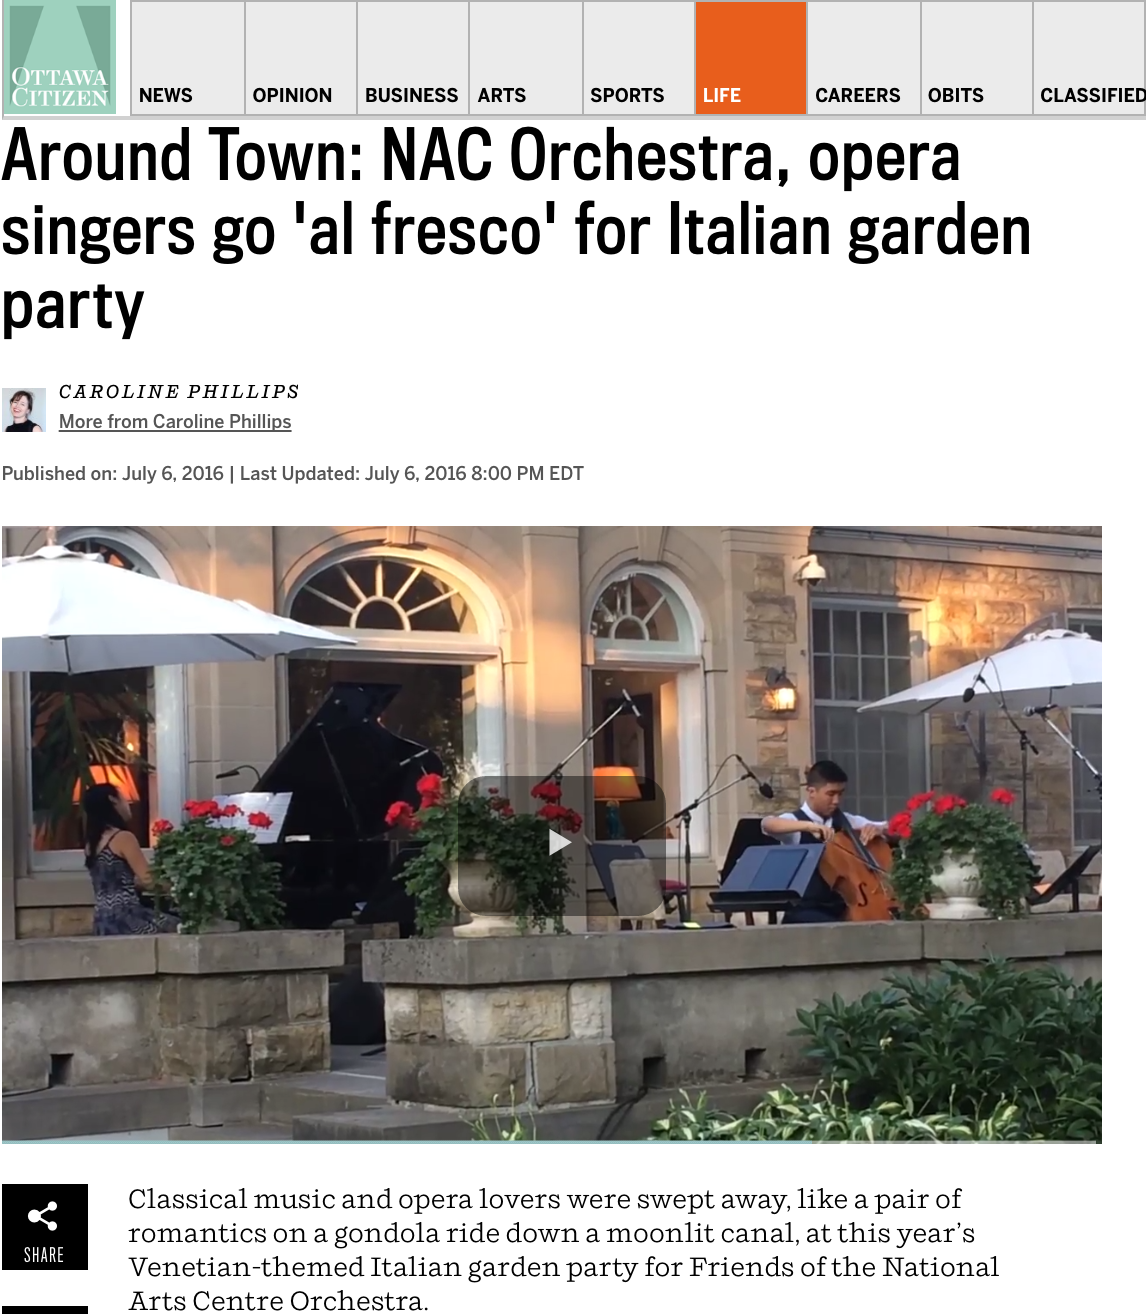 Around Town: Italian garden party